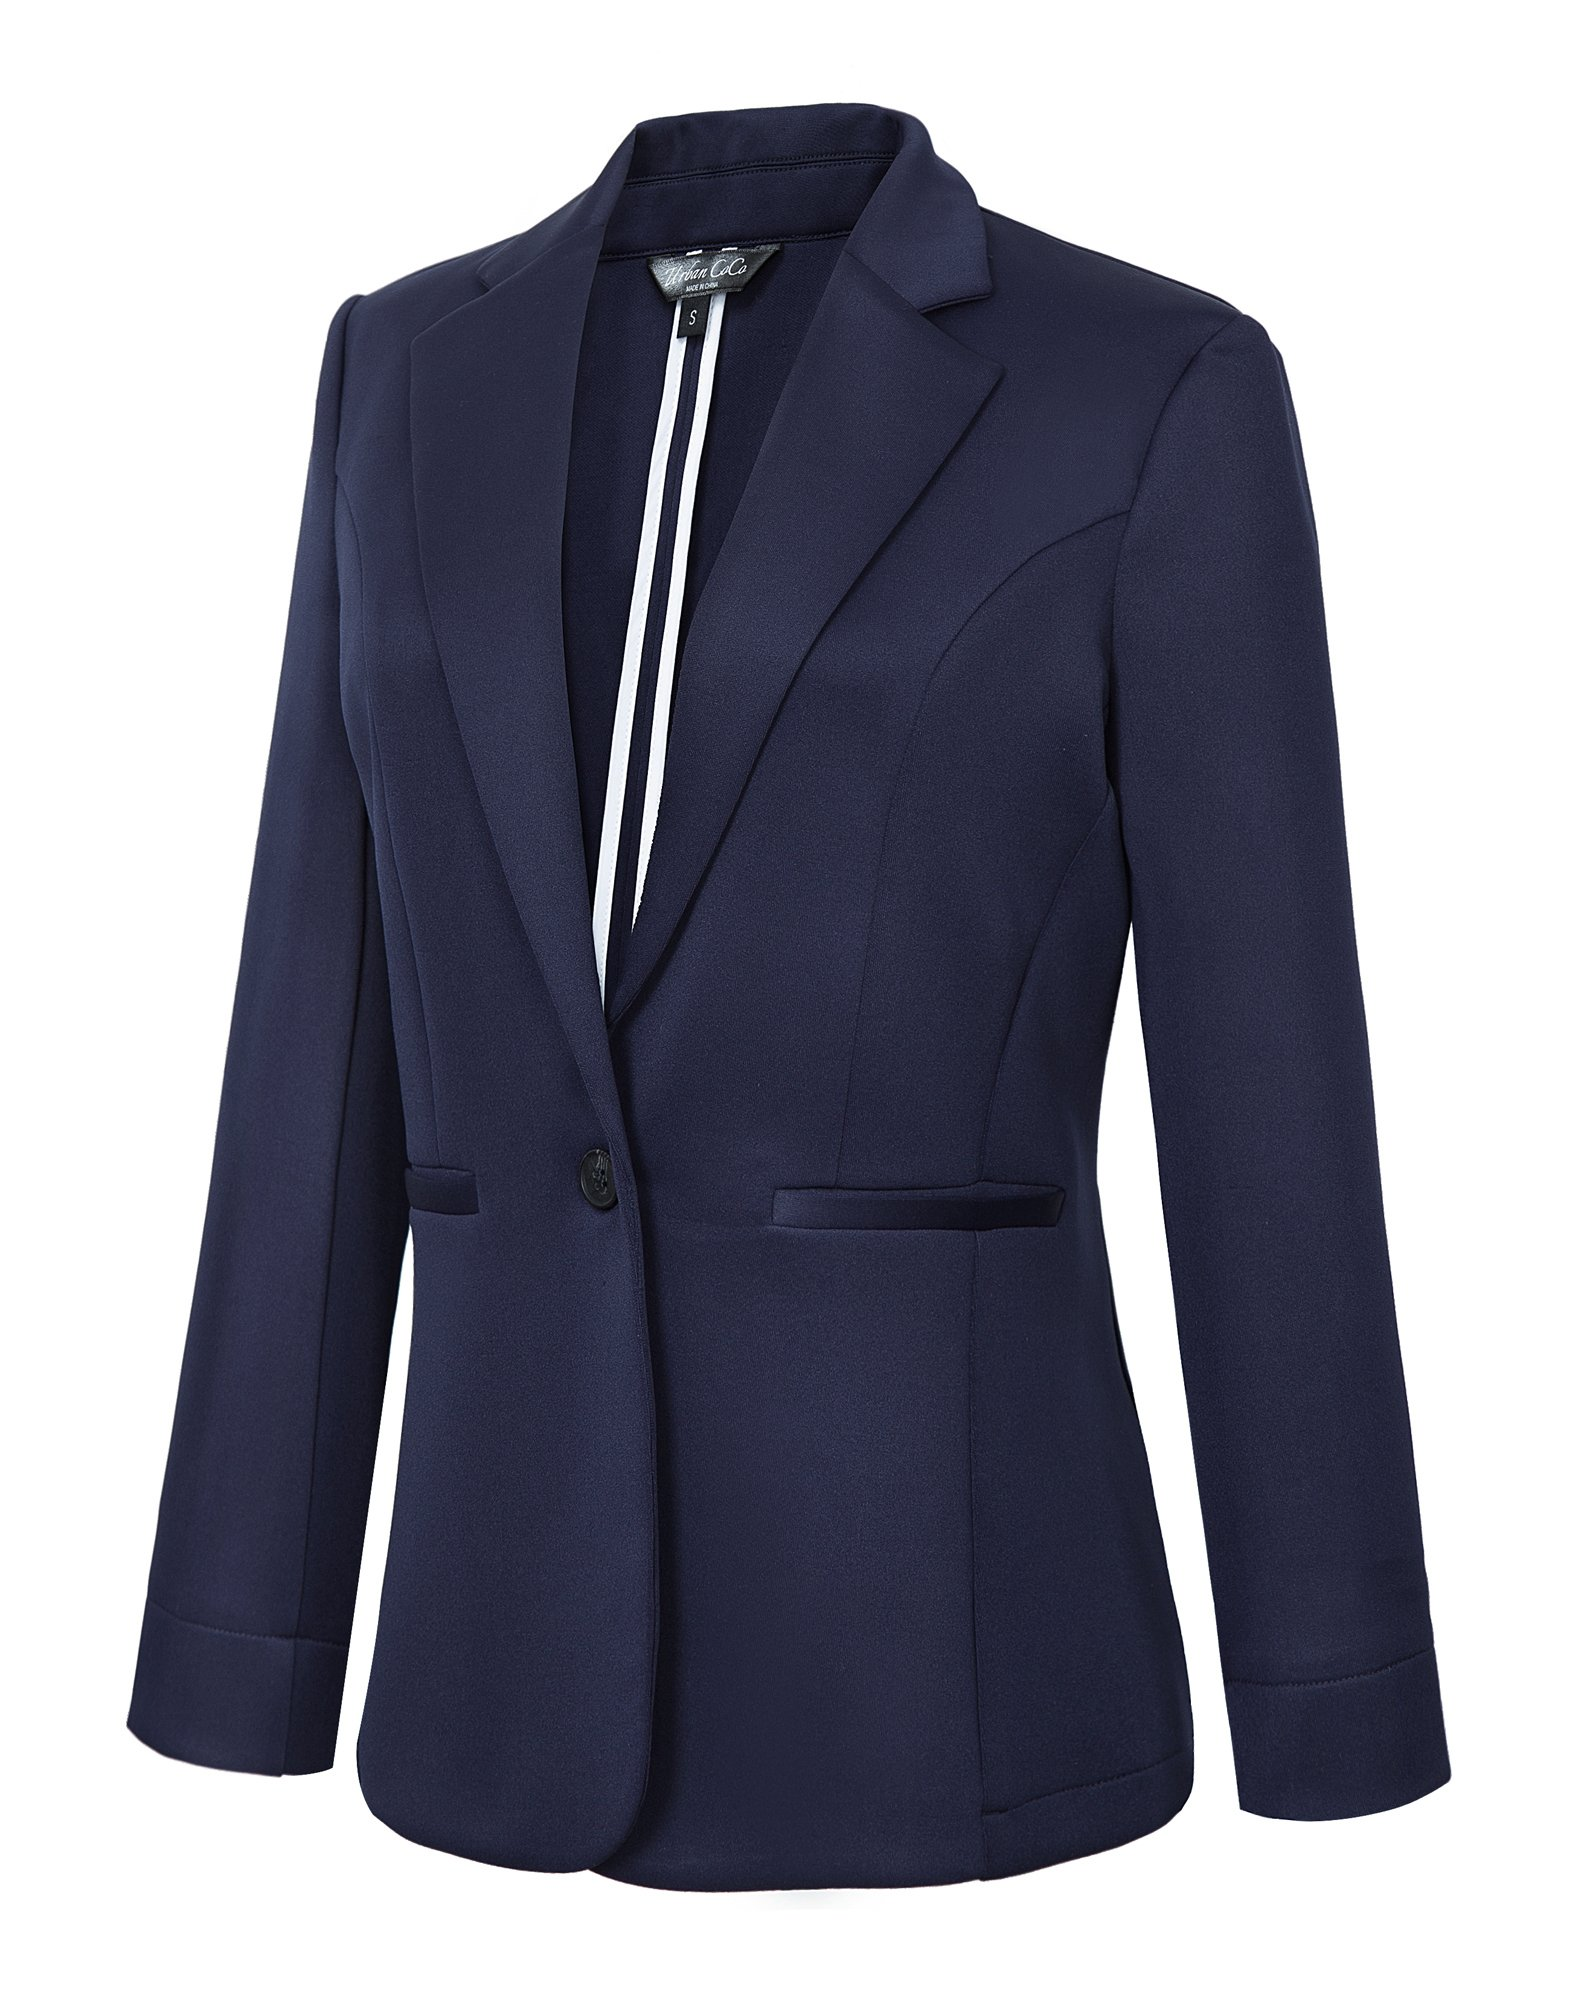 Women's Casual One Button Office Blazer Jacket (L, Navy Blue)